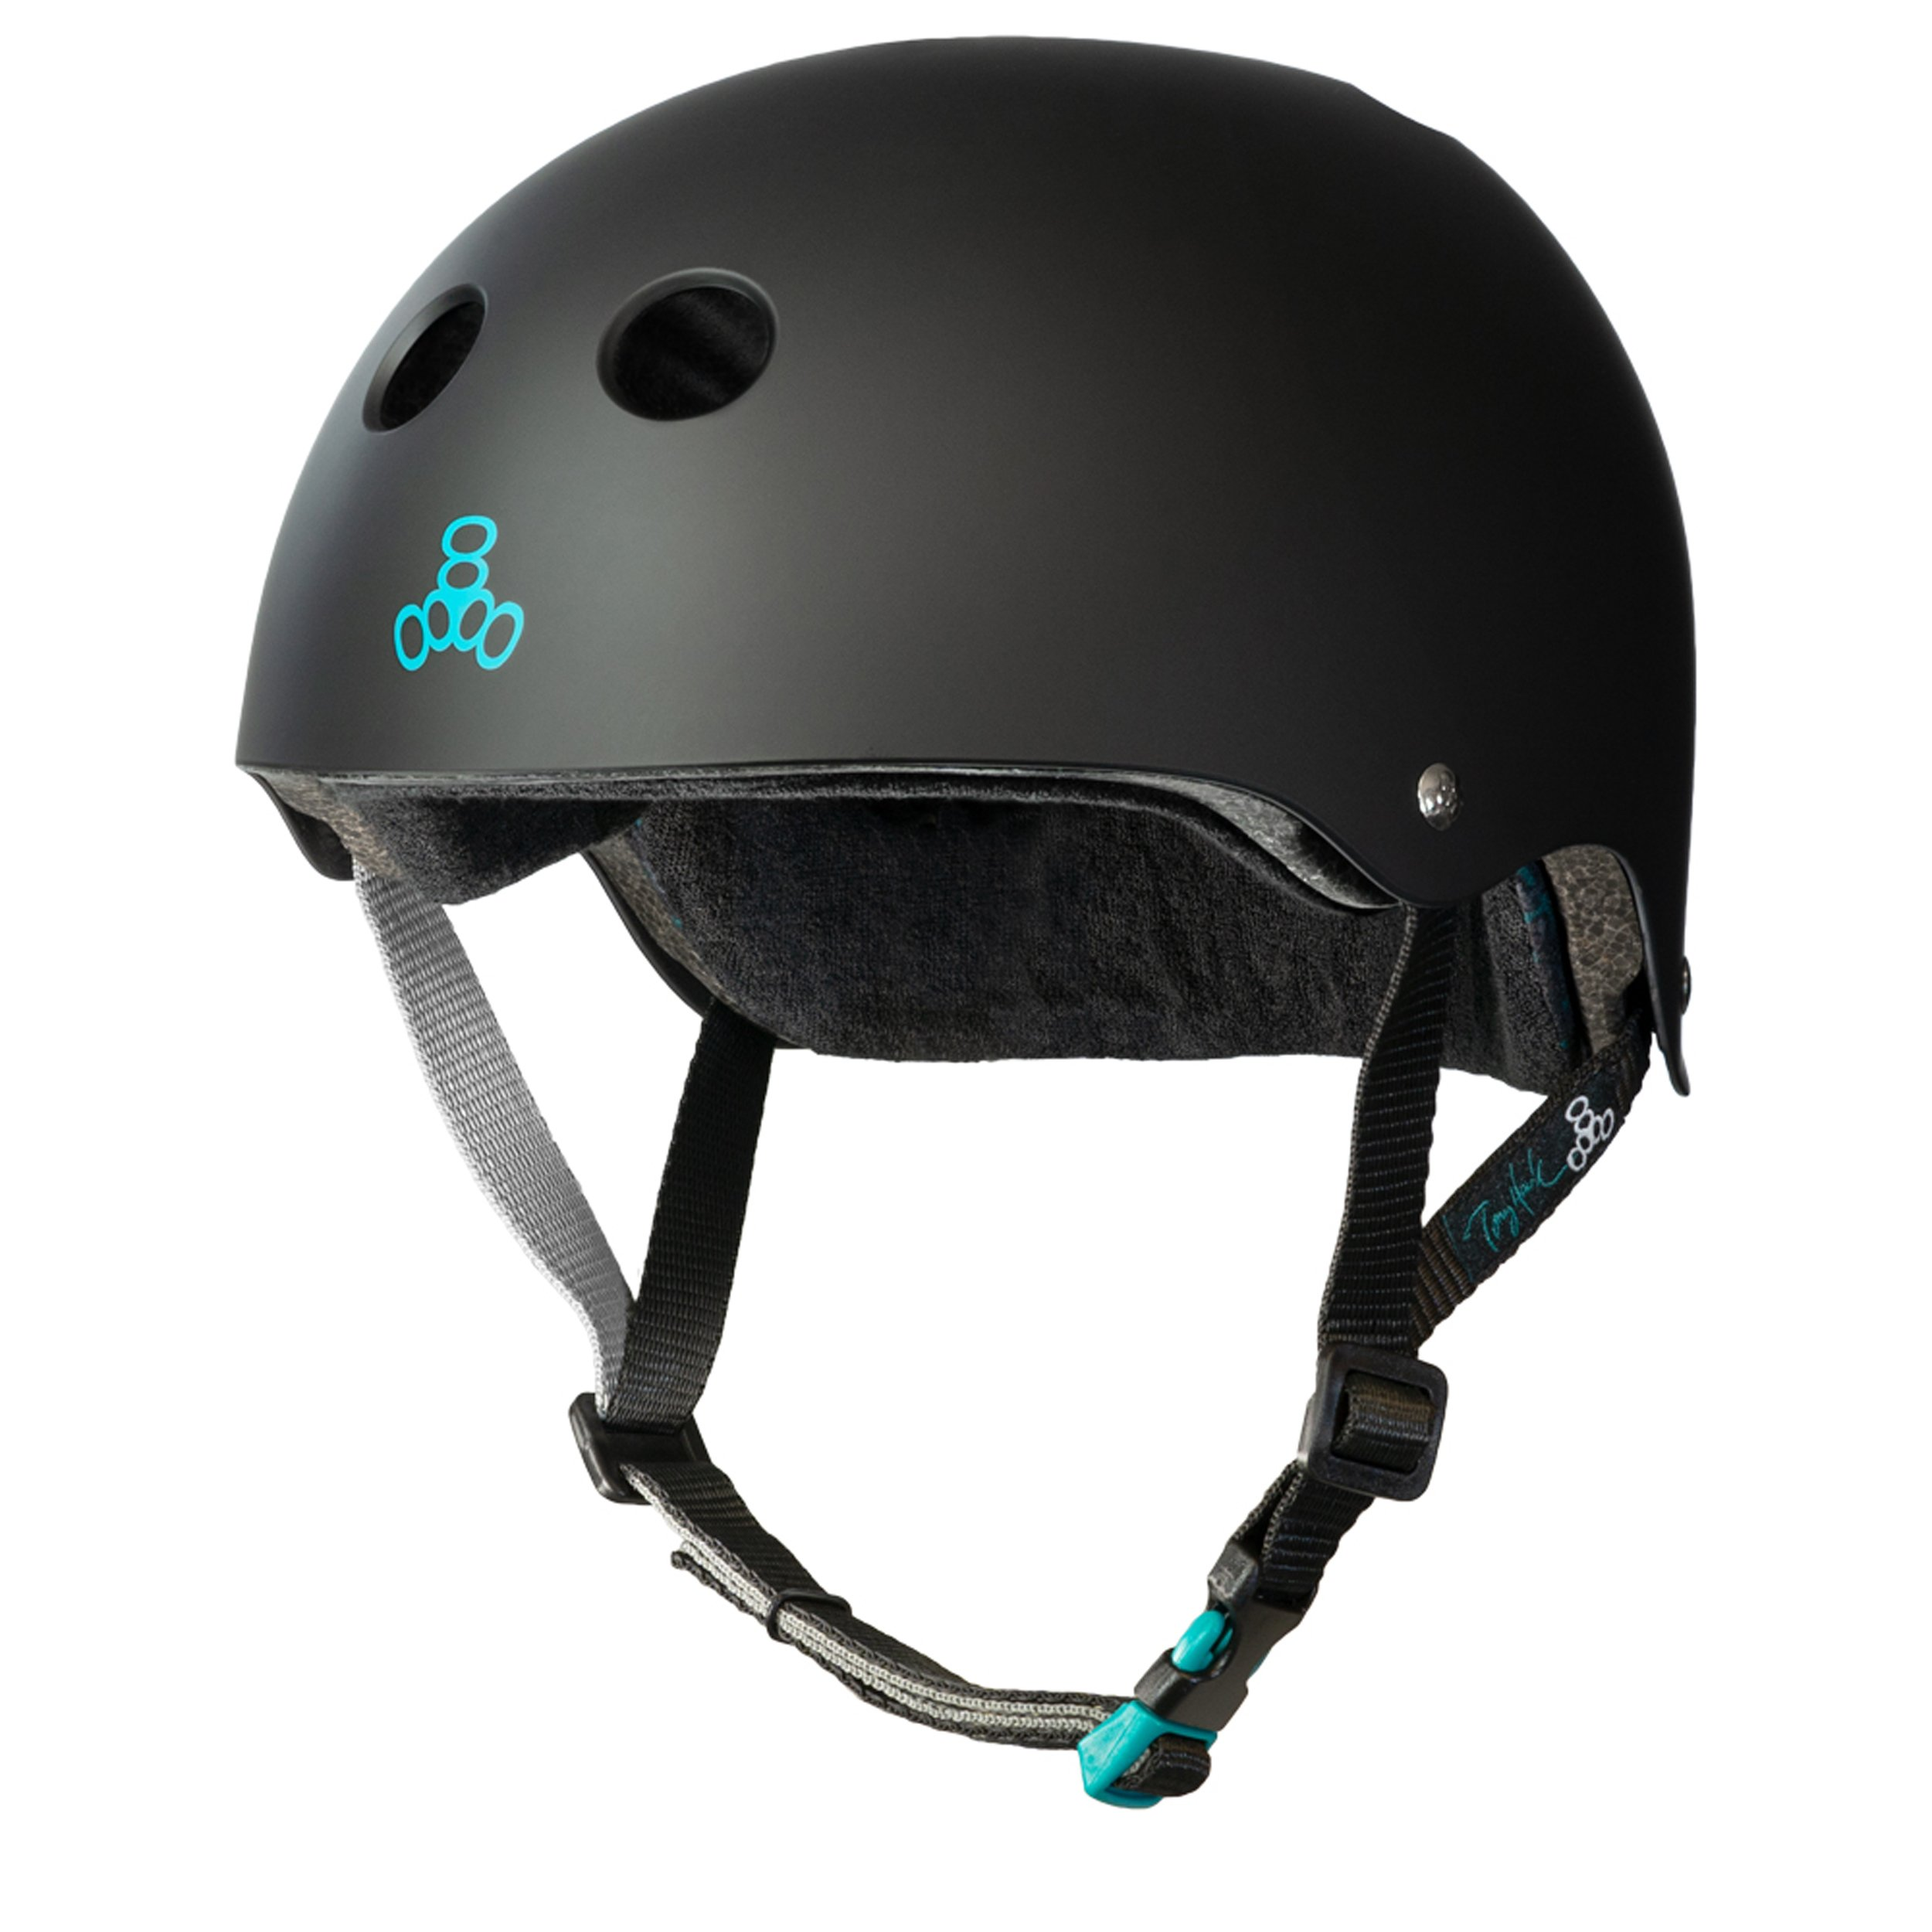 Triple Eight Tony Hawk Signature Model The Certified Sweatsaver Helmet for Skateboarding, BMX, and Roller Skating, X-Small/Small